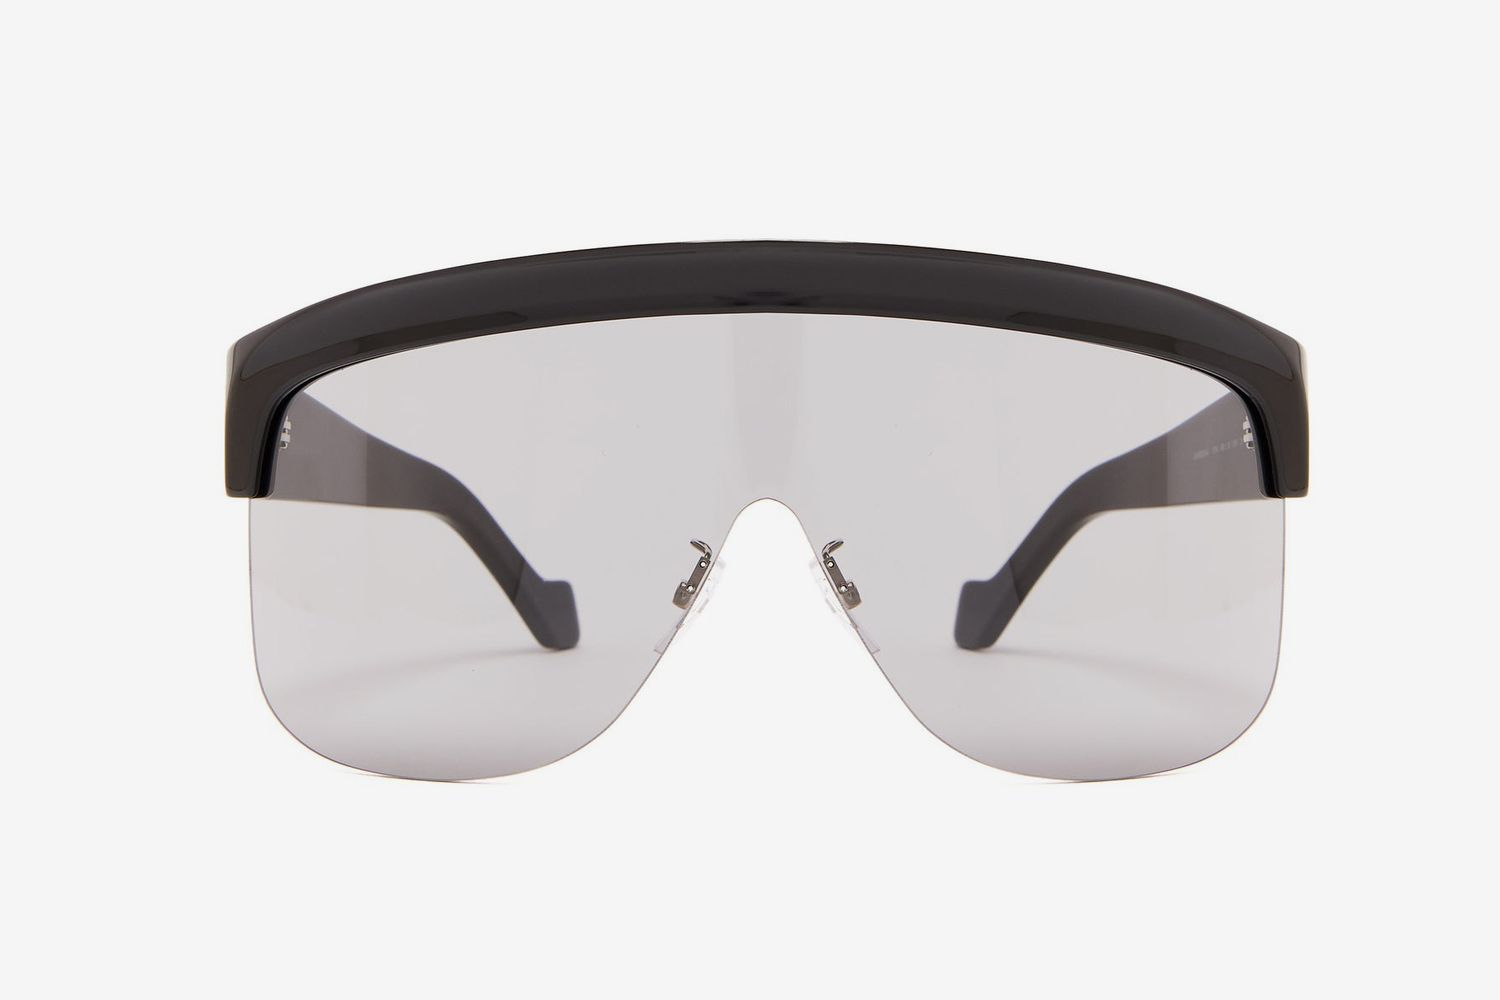 Visor Acetate Sunglasses